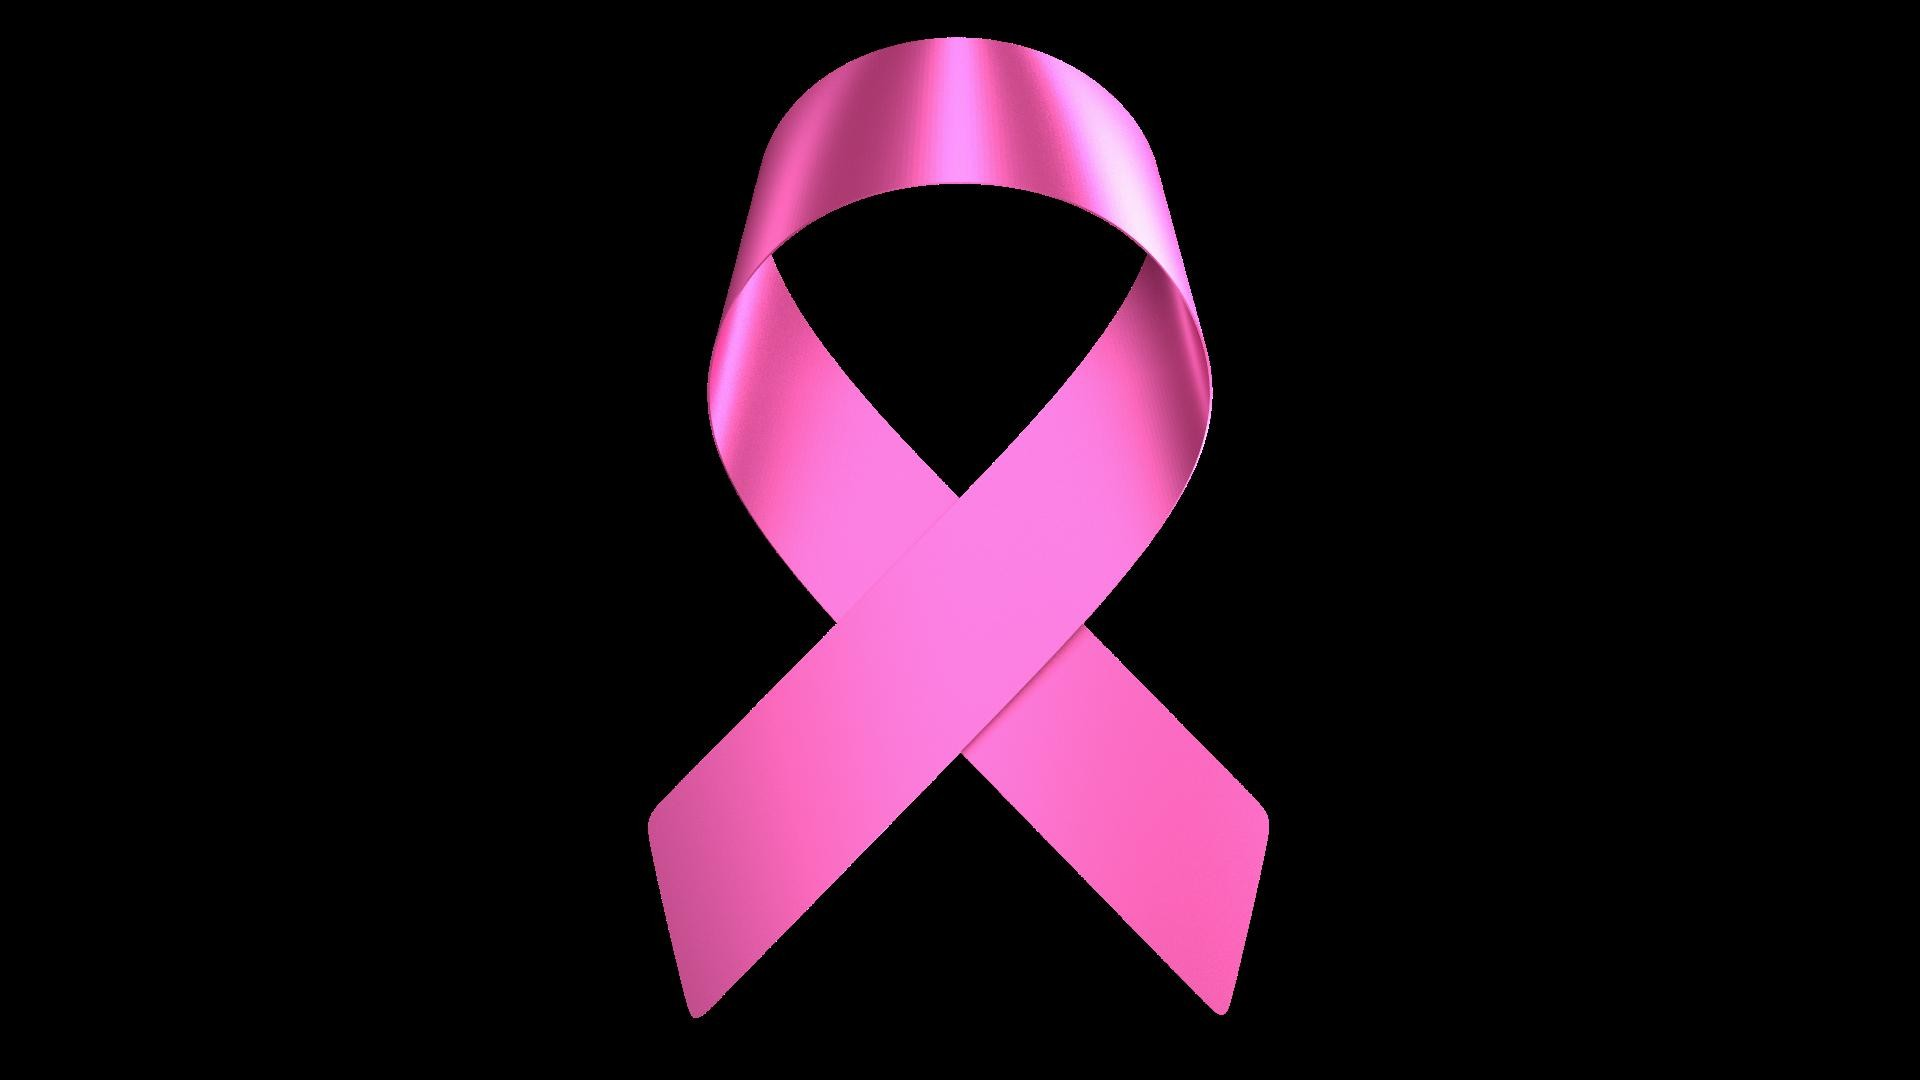 Breast Cancer Pink Ribbon Wallpaper 48 Images HD Wallpapers Download Free Images Wallpaper [1000image.com]